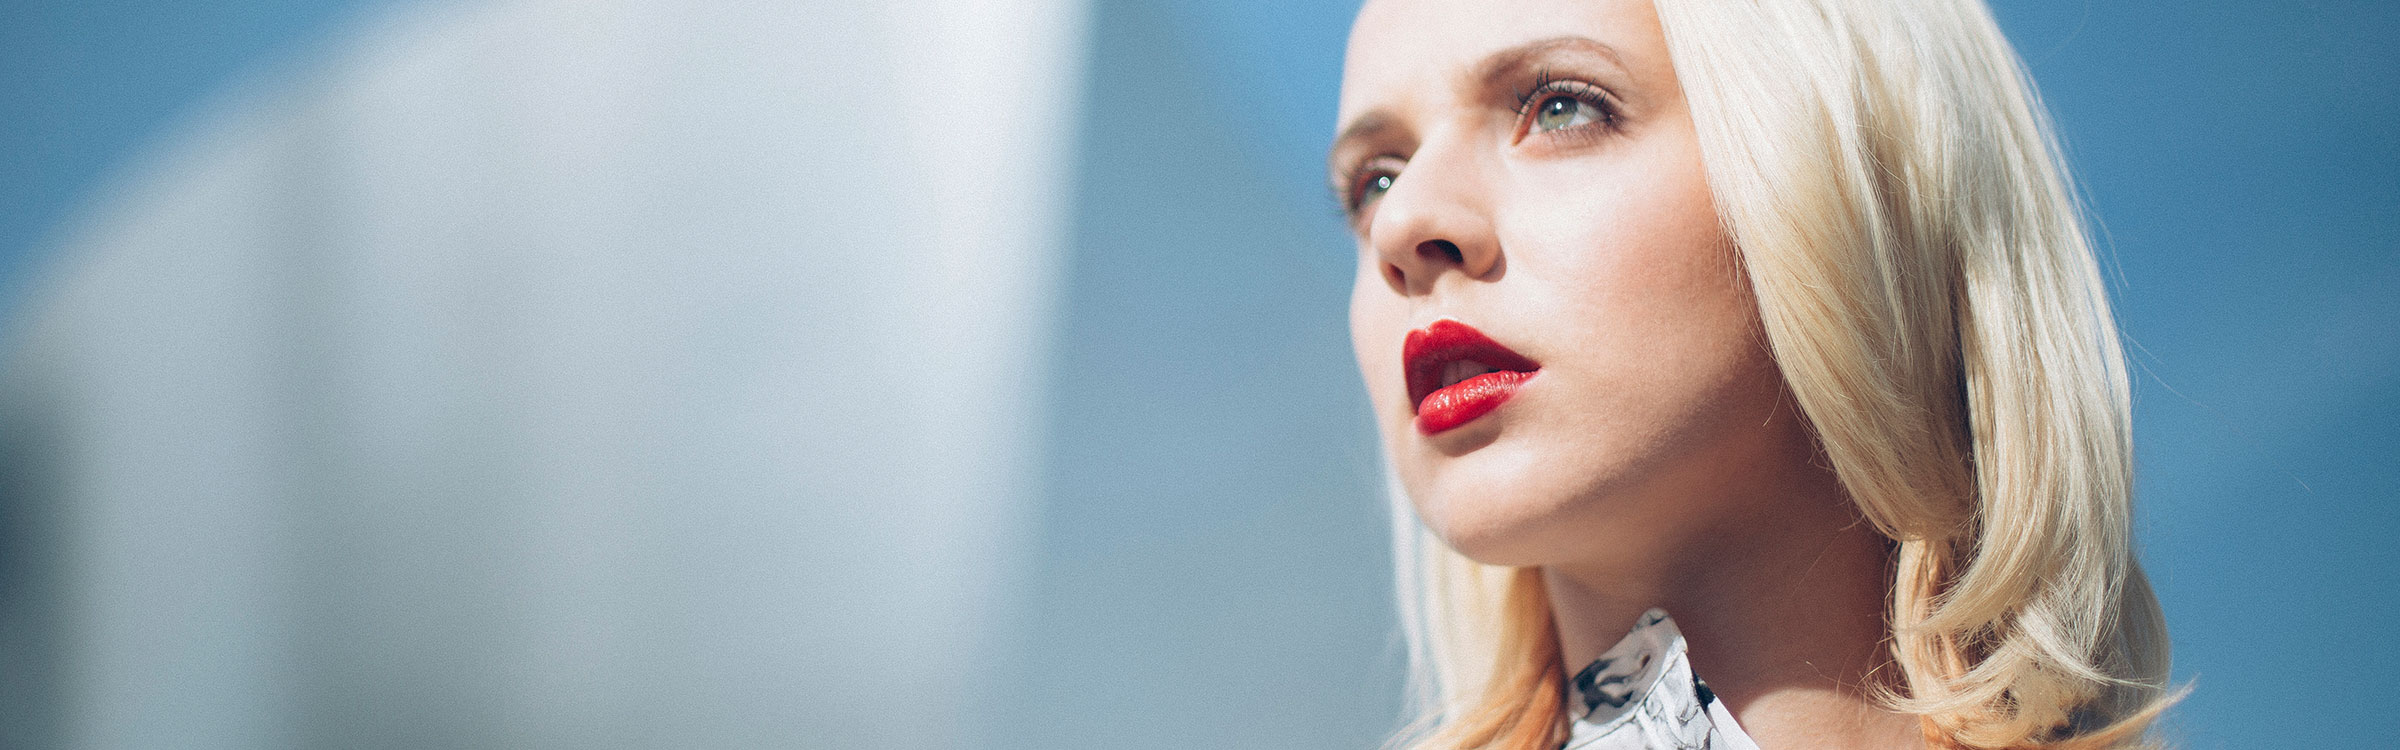 Q 2400x750 lachill madilynbailey